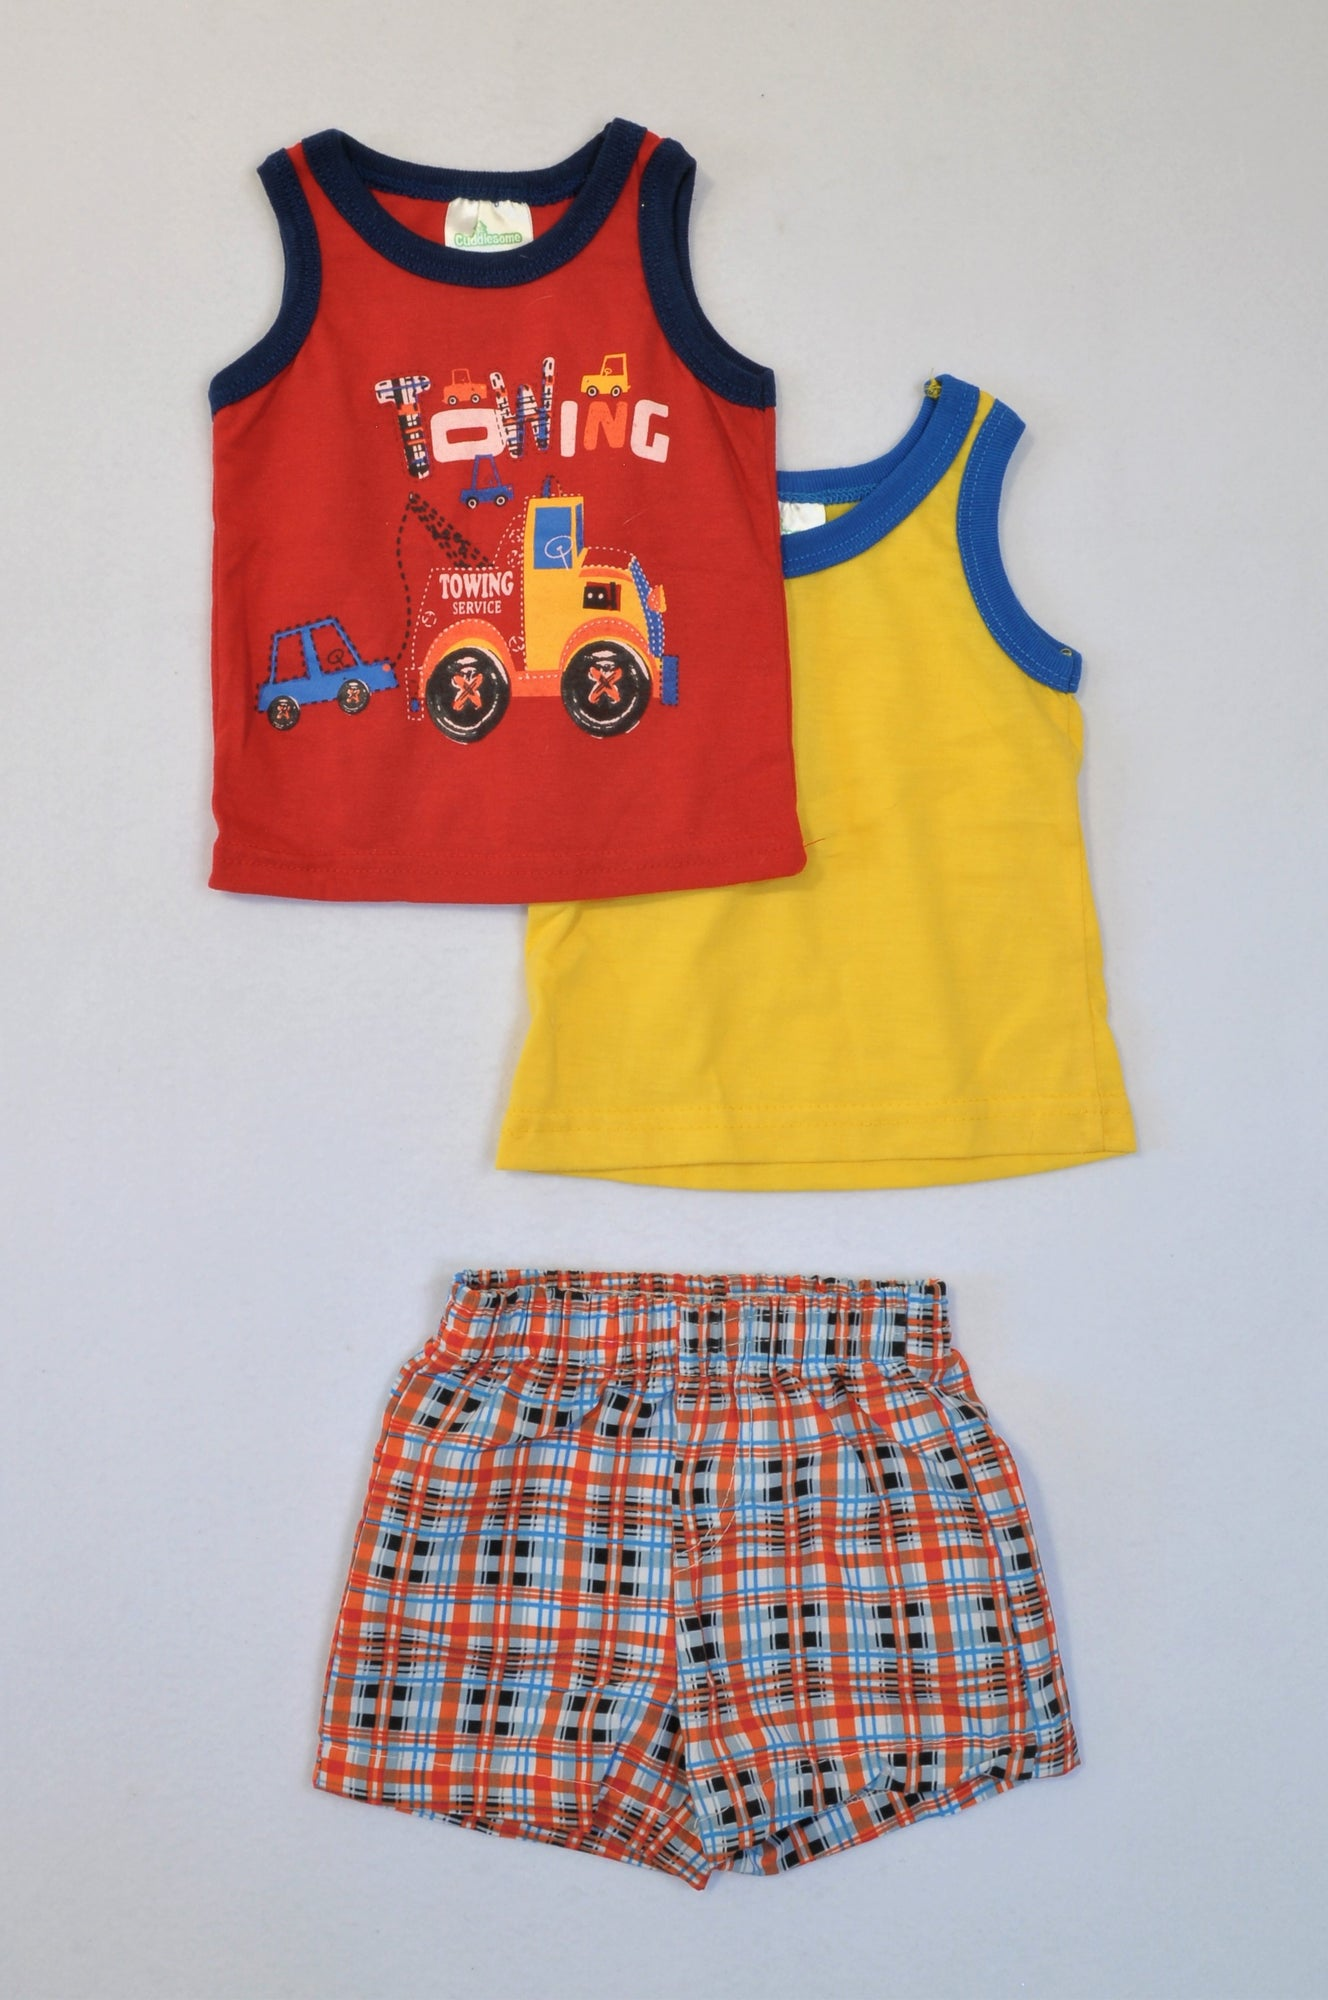 New Pep 3 Pack Towing & Yellow Tank Tops and Plaid Shorts Outfit Boys 0-3 months